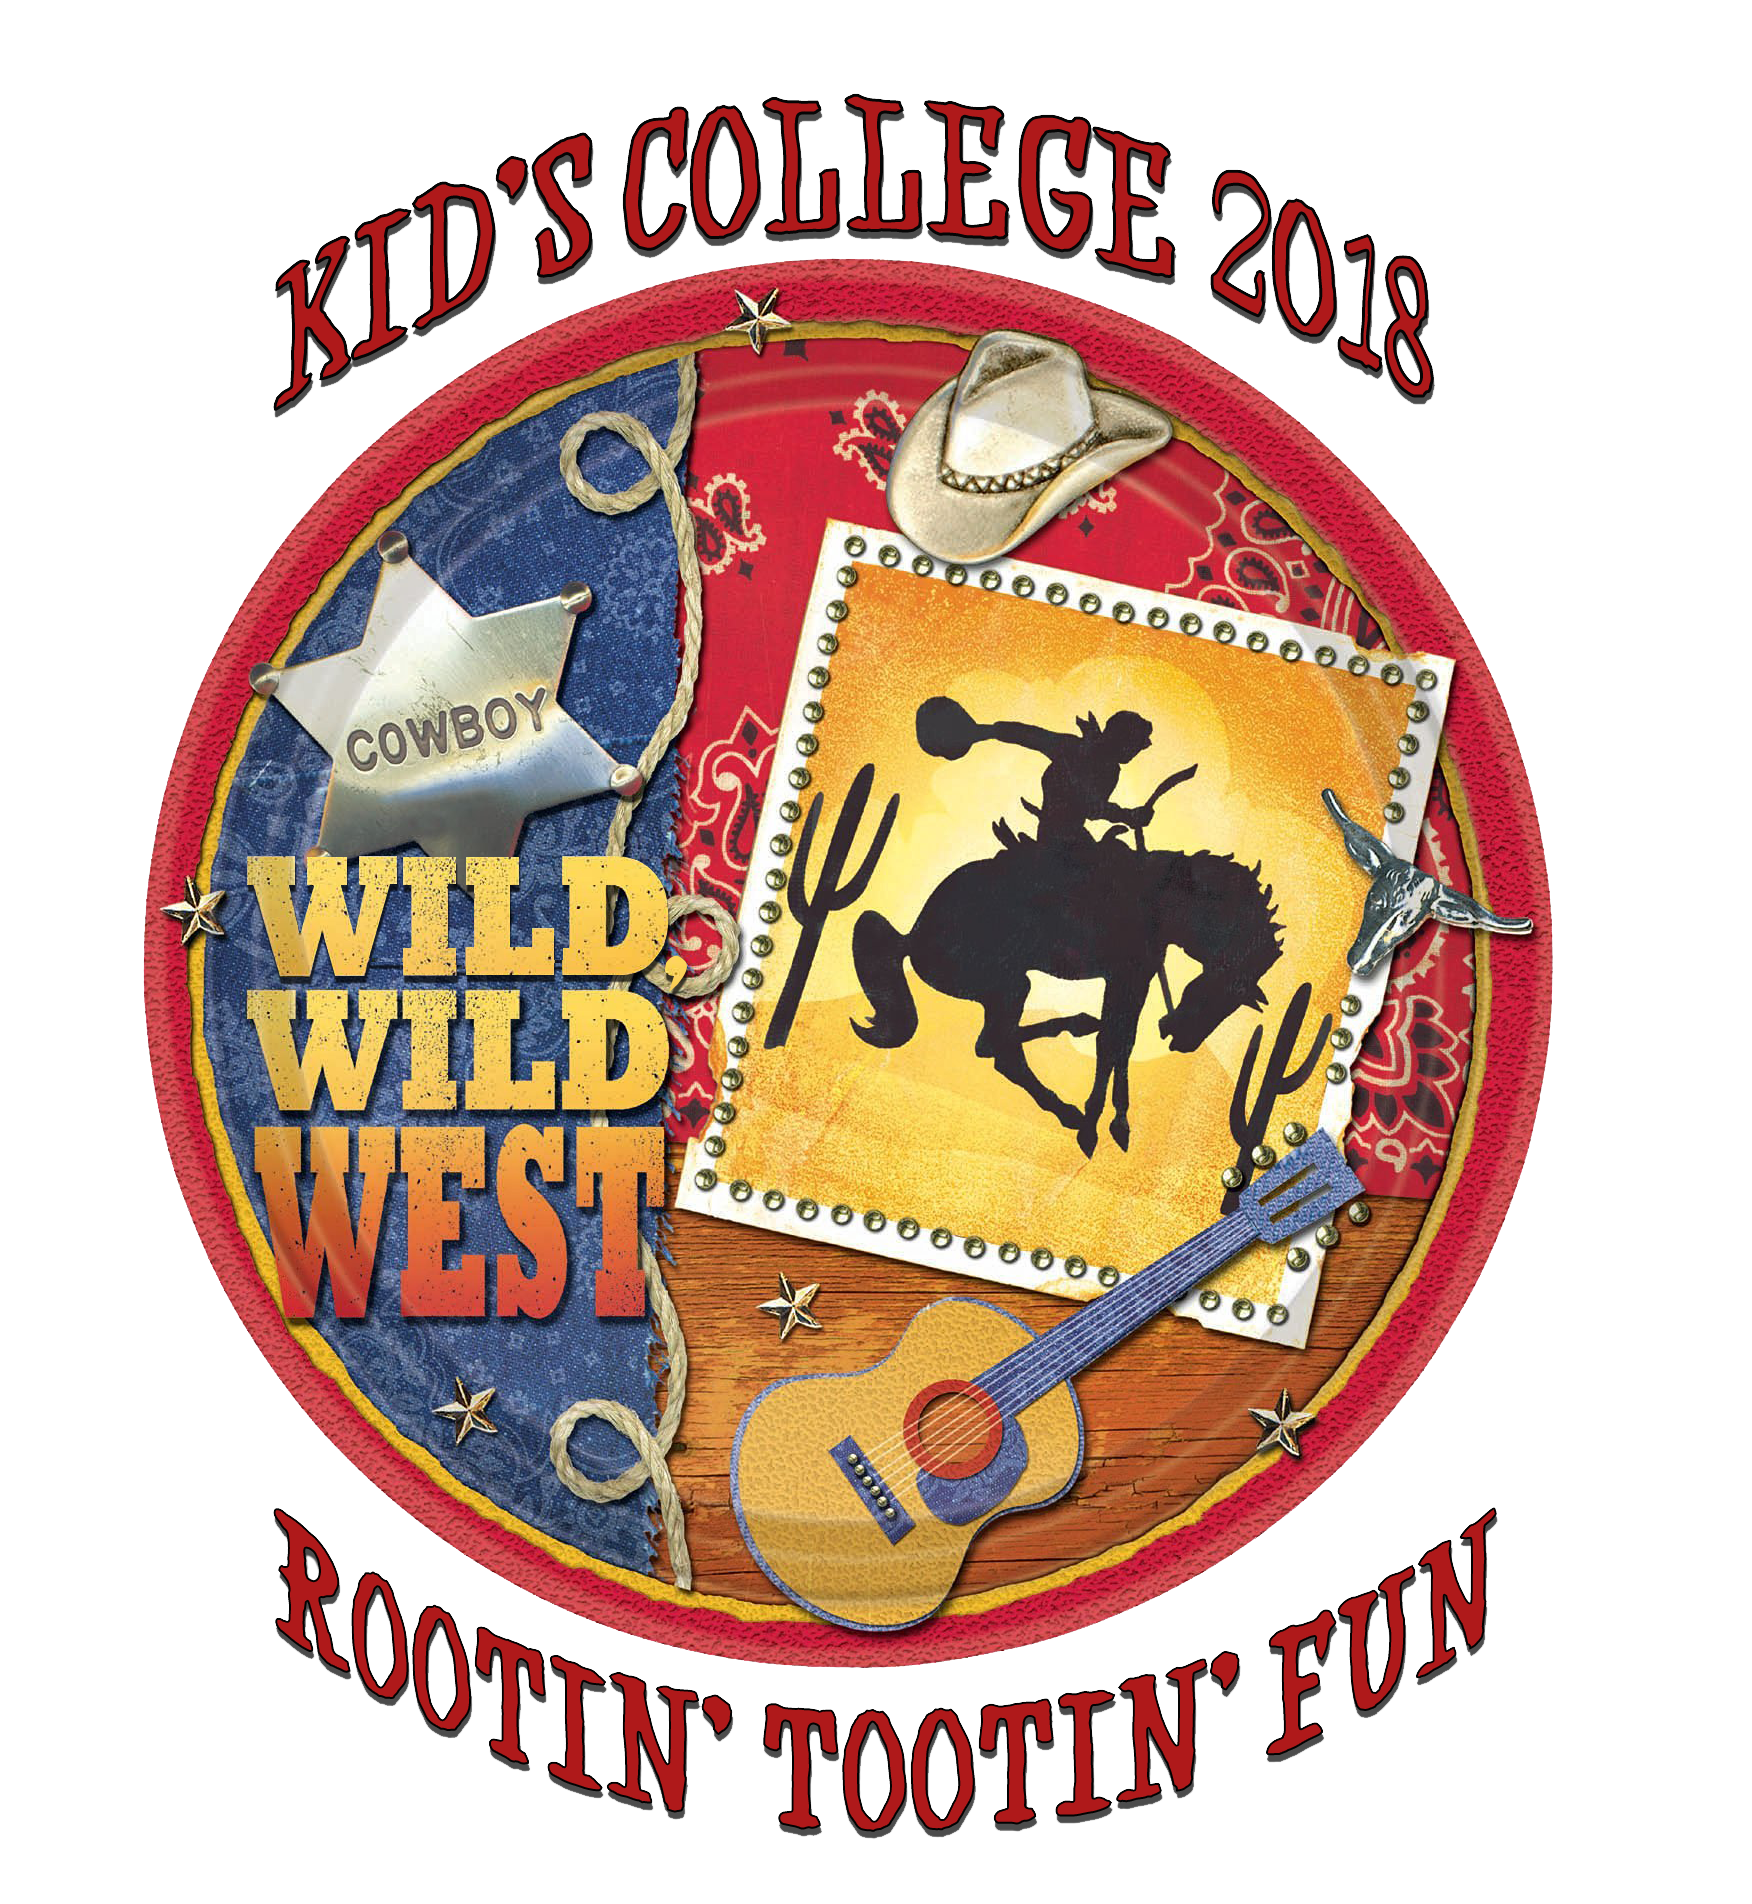 Kid's College 2018 will be rootin' tootin' fun